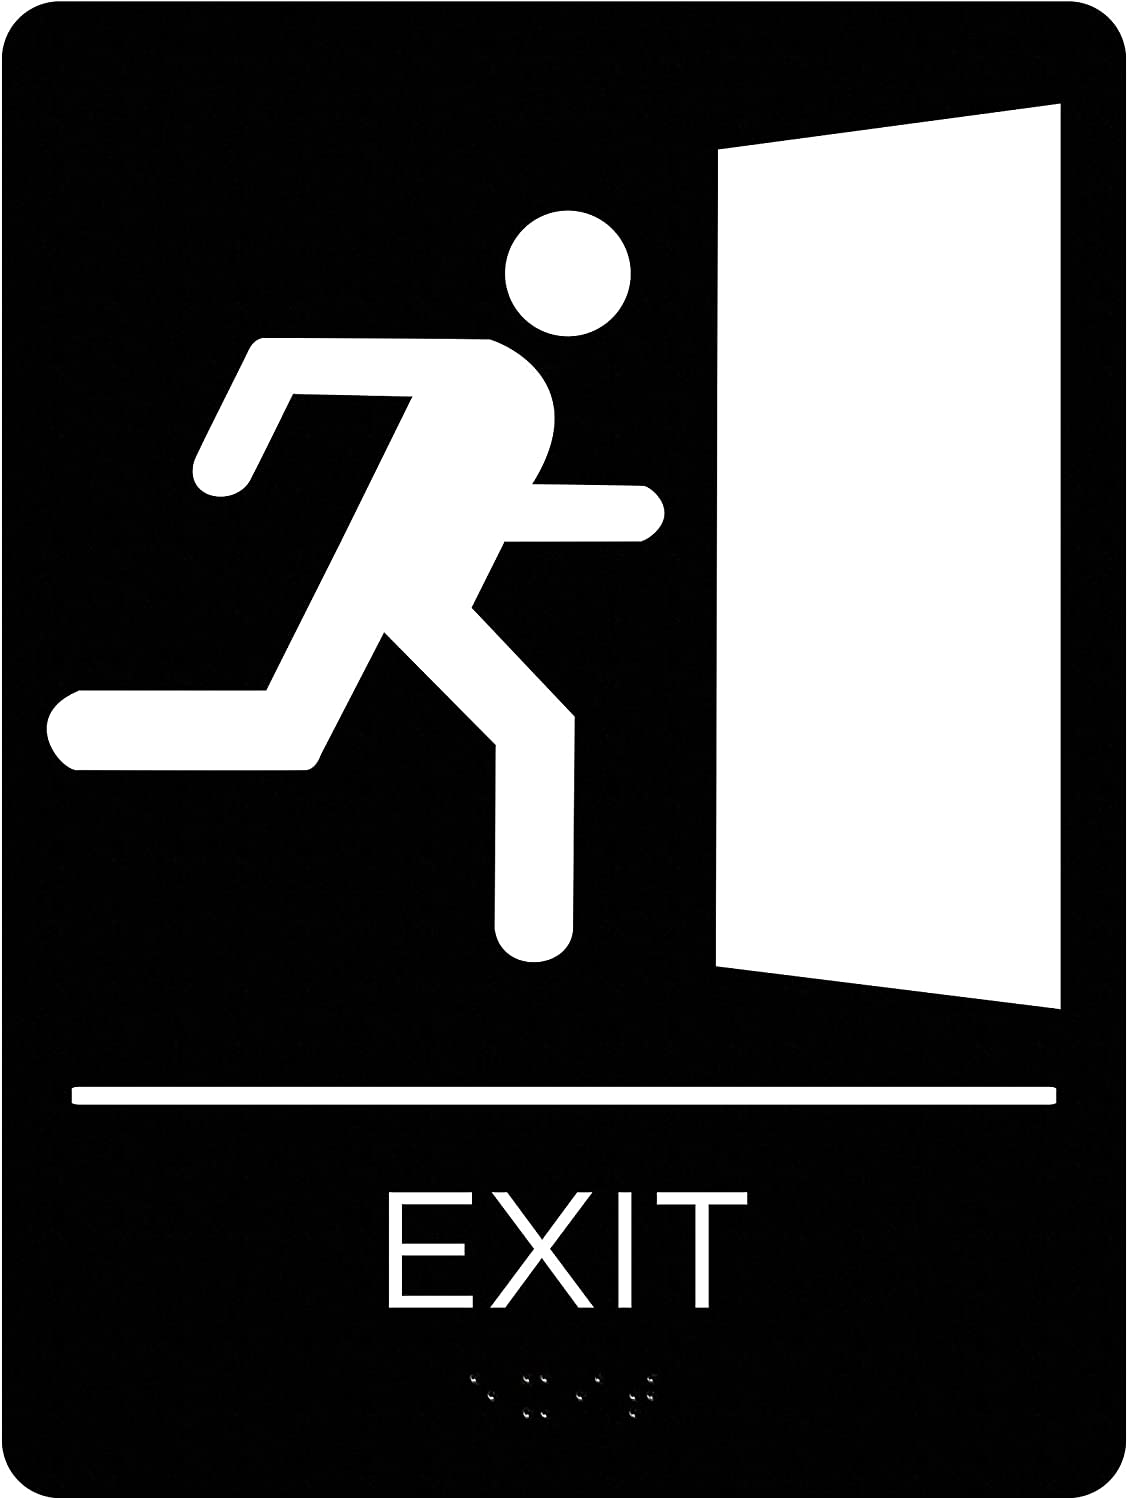 Corko Signs Braille Exit Sign for Door or Wall, ADA Compliant with Double Sided 3M Tape to Secure Perfectly in Less Than a Minute